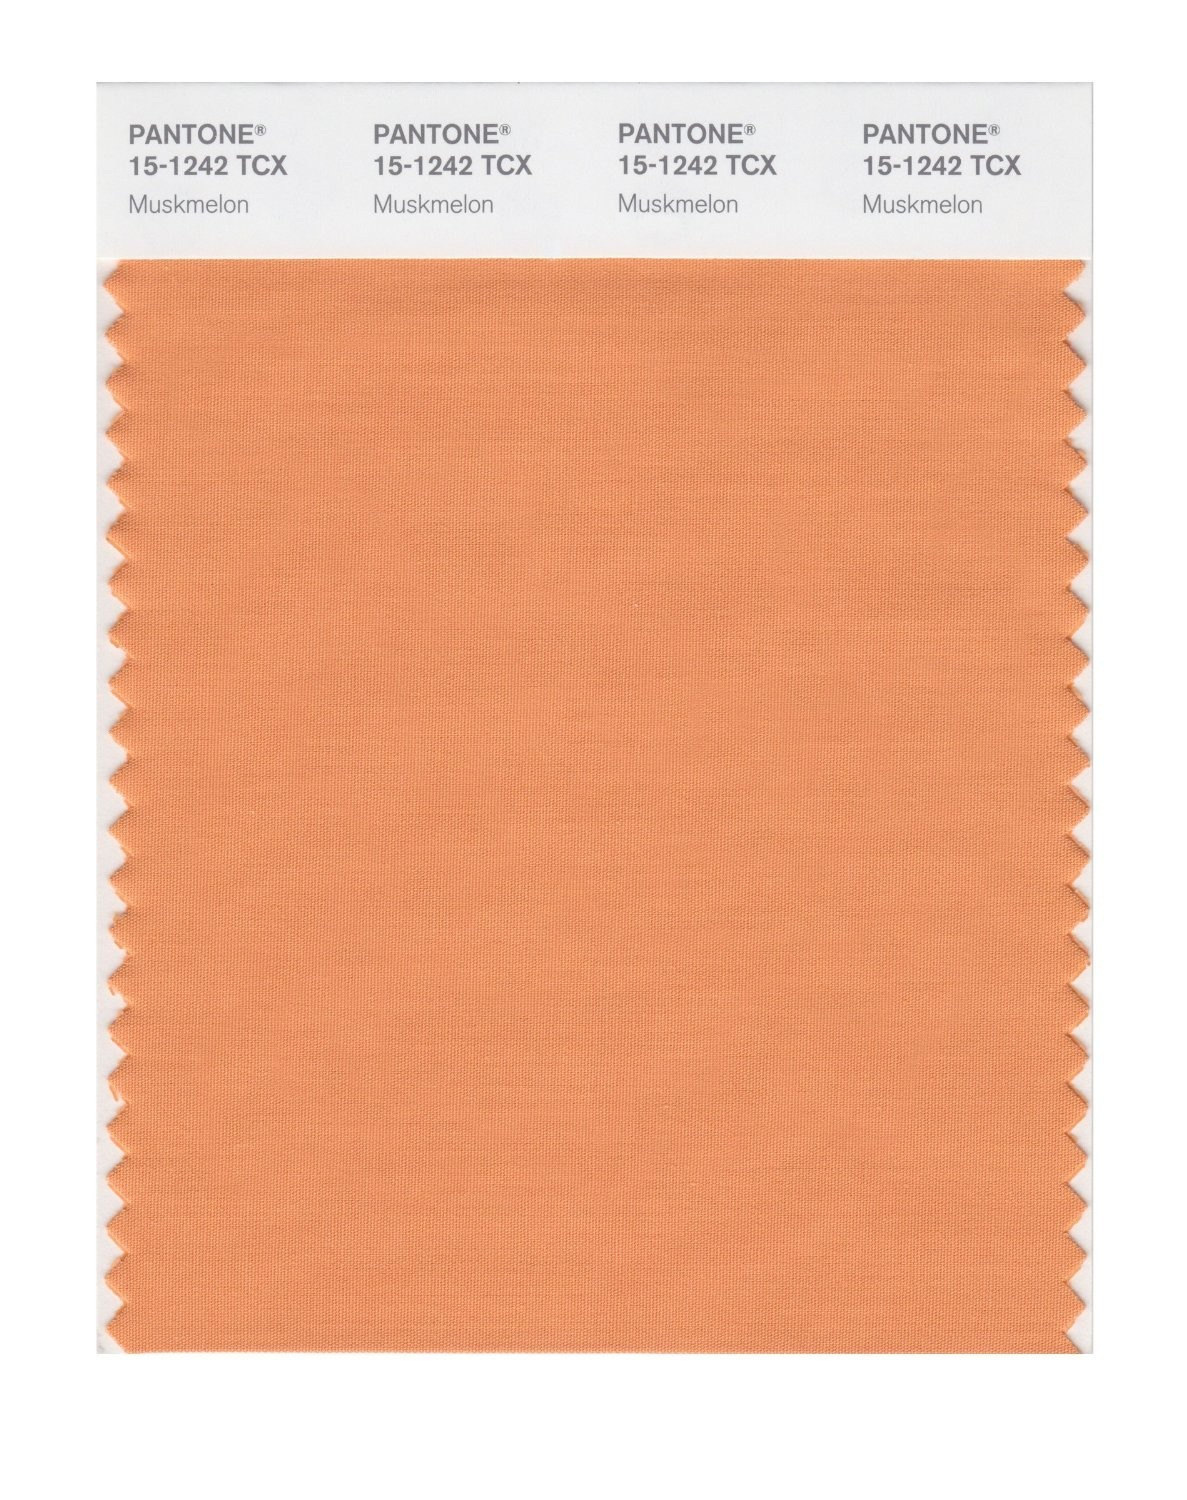 Pantone 15-1242 TCX Swatch Card Muskmelon